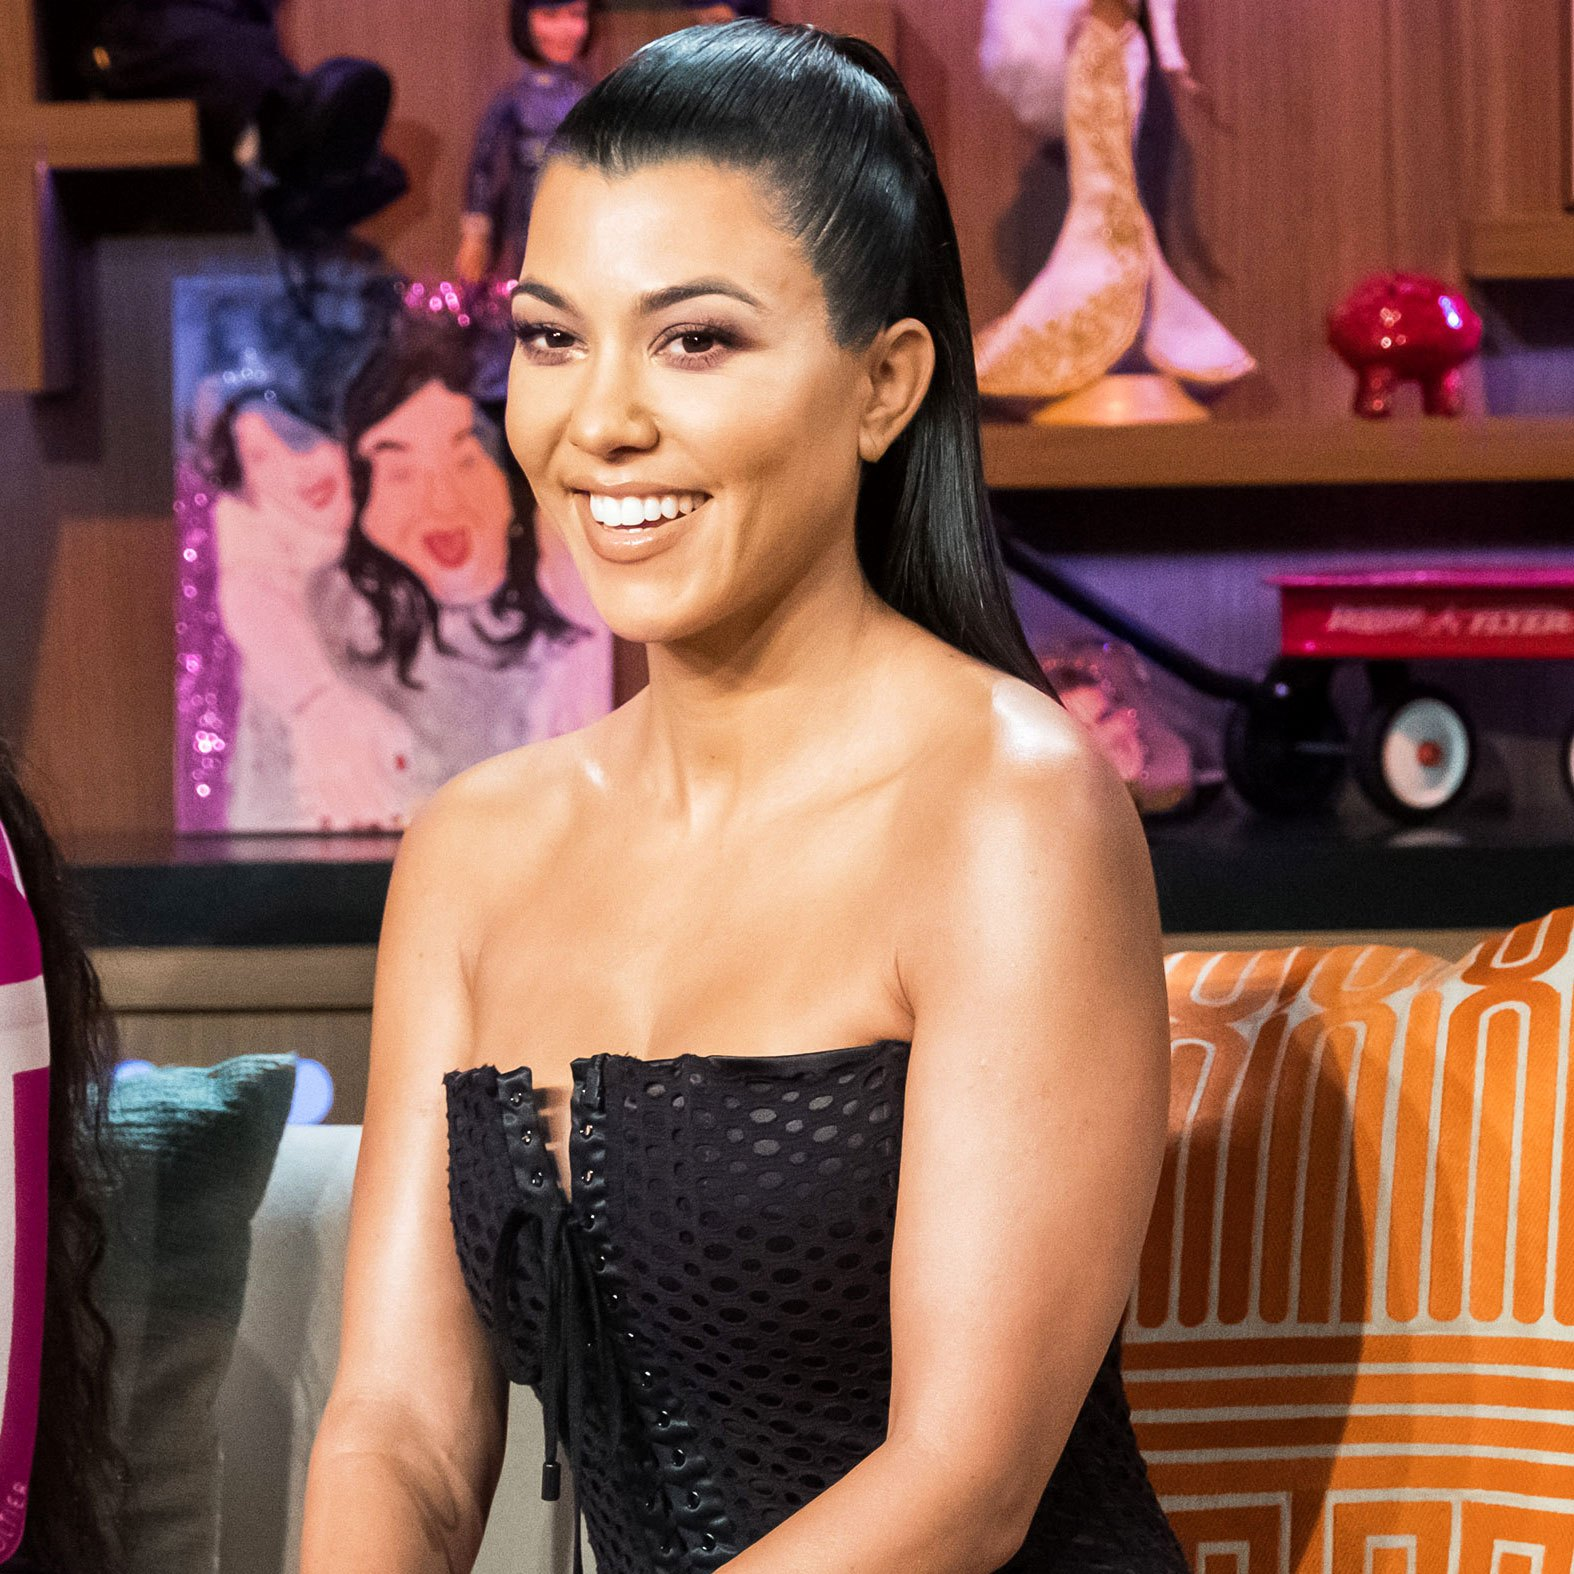 Foods Kourtney Kardashian Swears By For a Healthier Life: Apple Tea, Avocado Smoothies and More